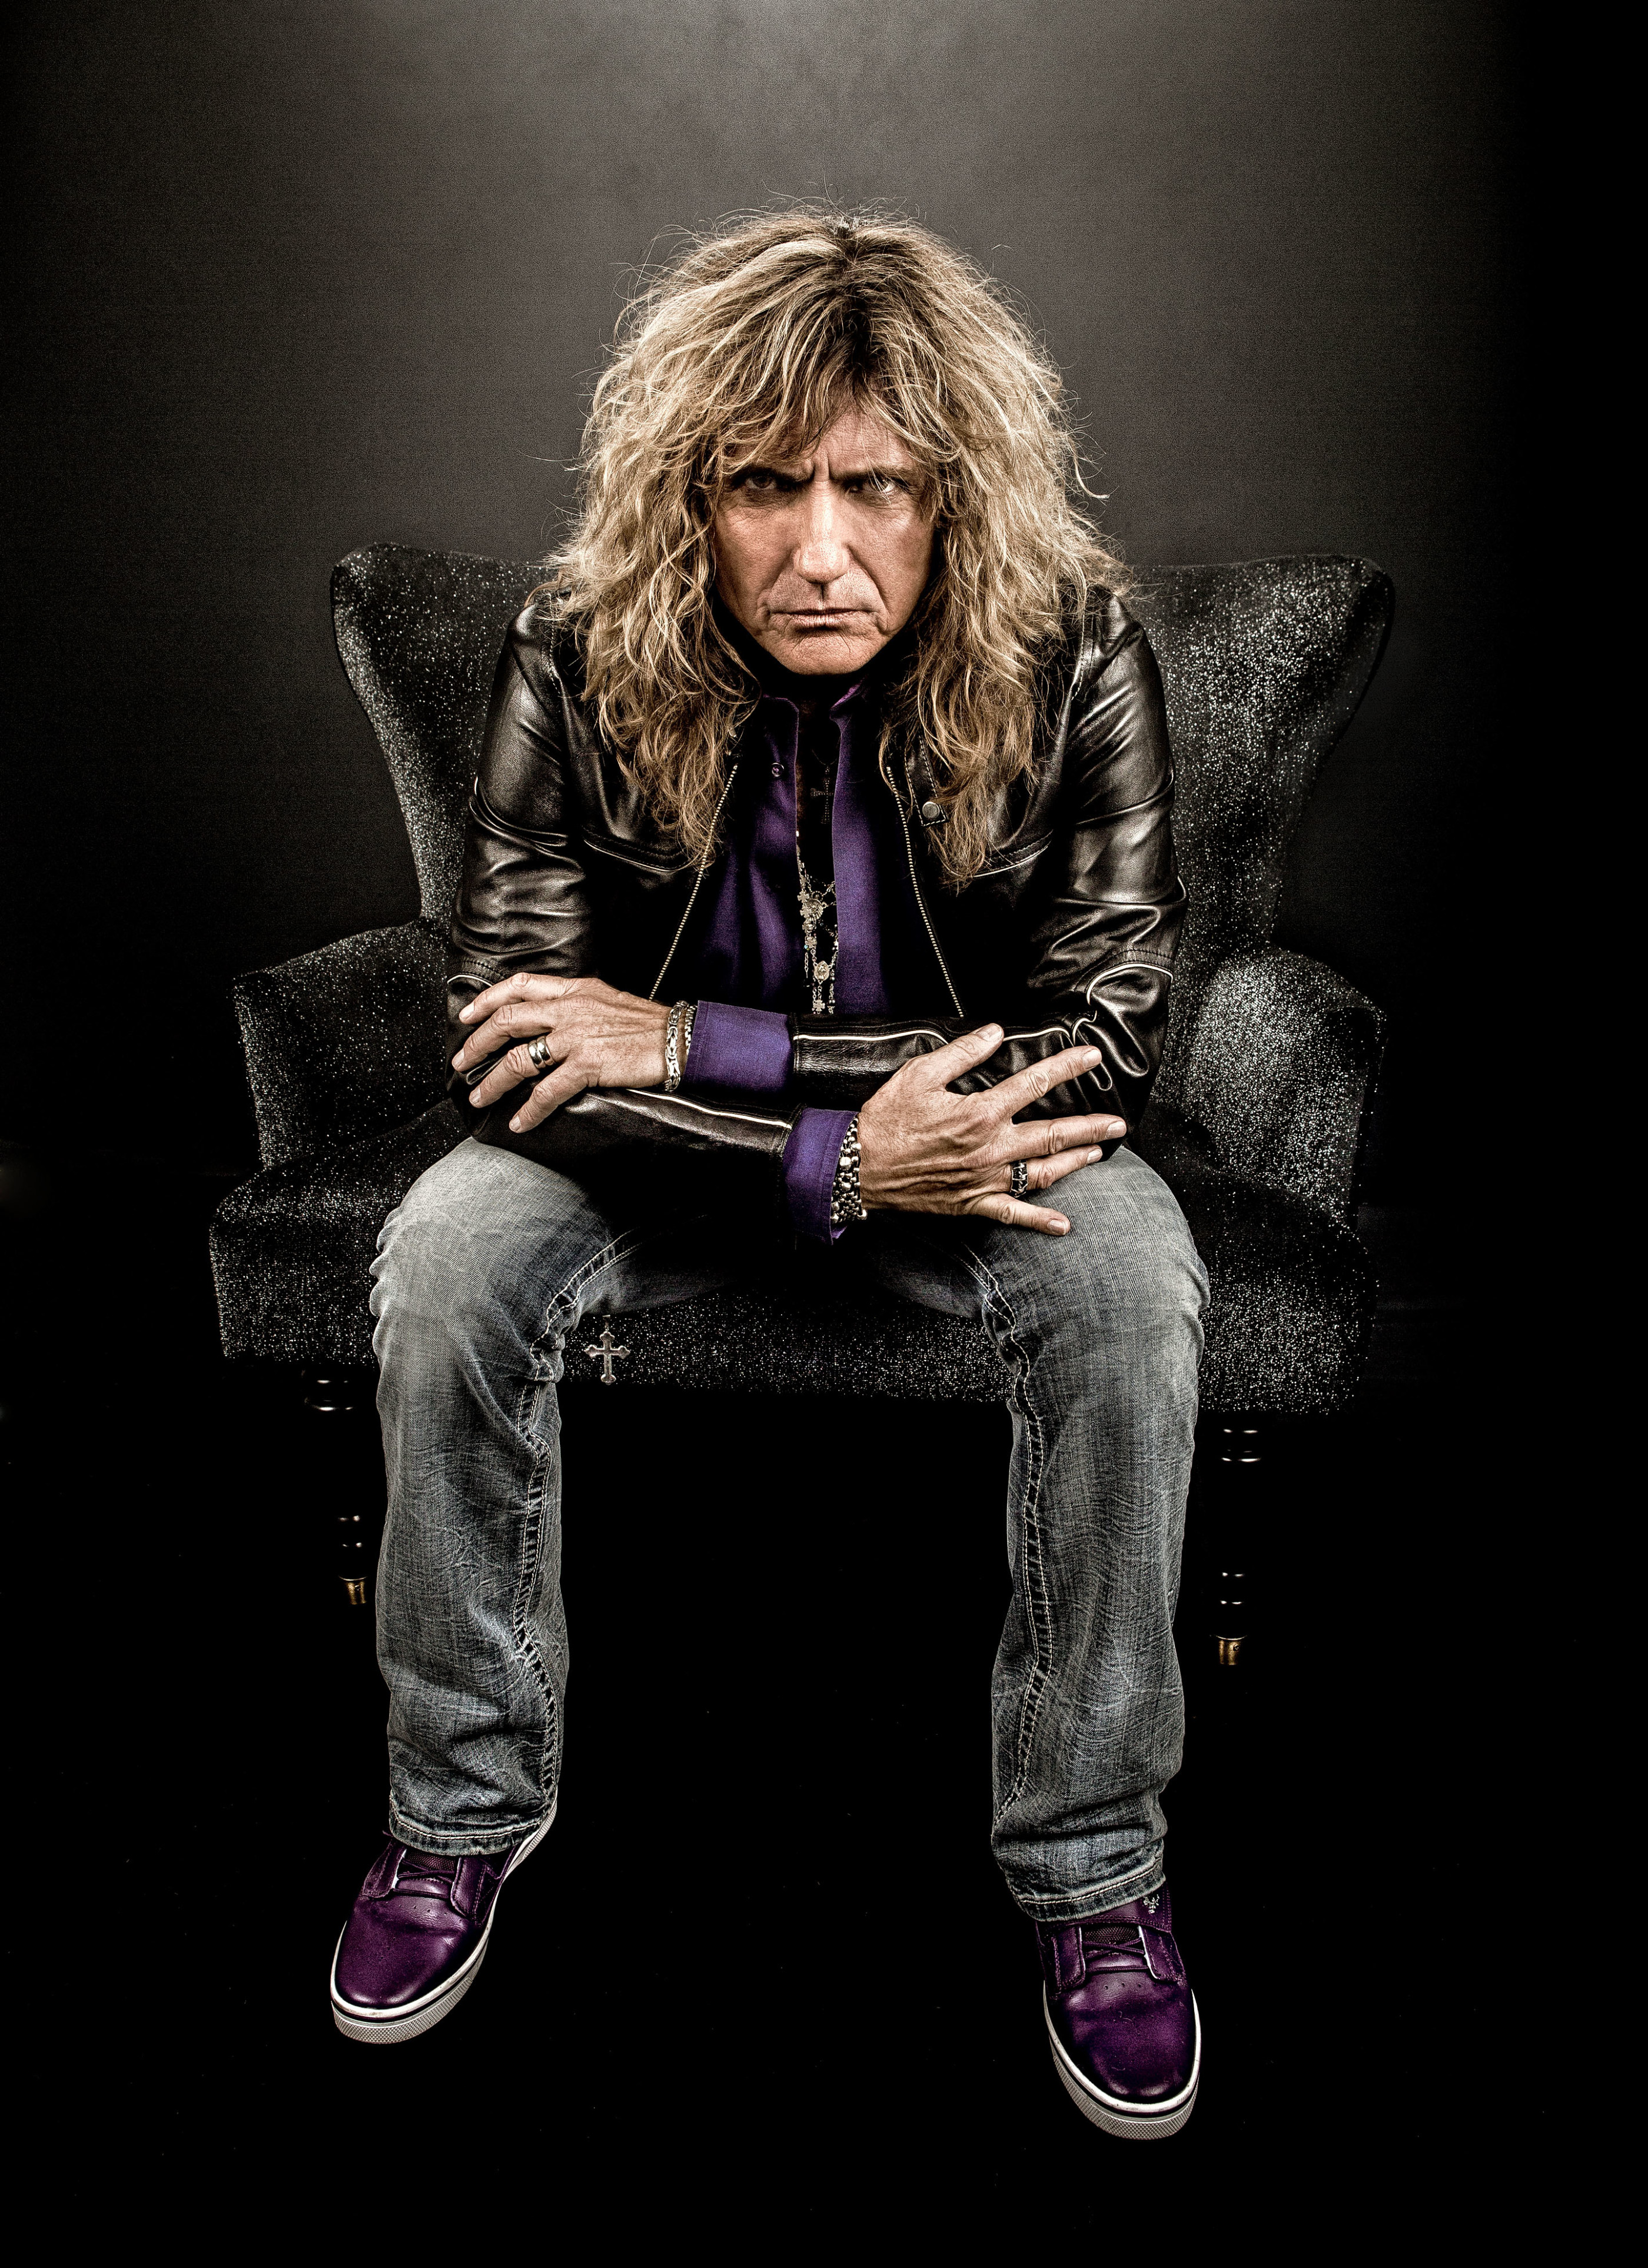 David Coverdale-Whitesnake 2014